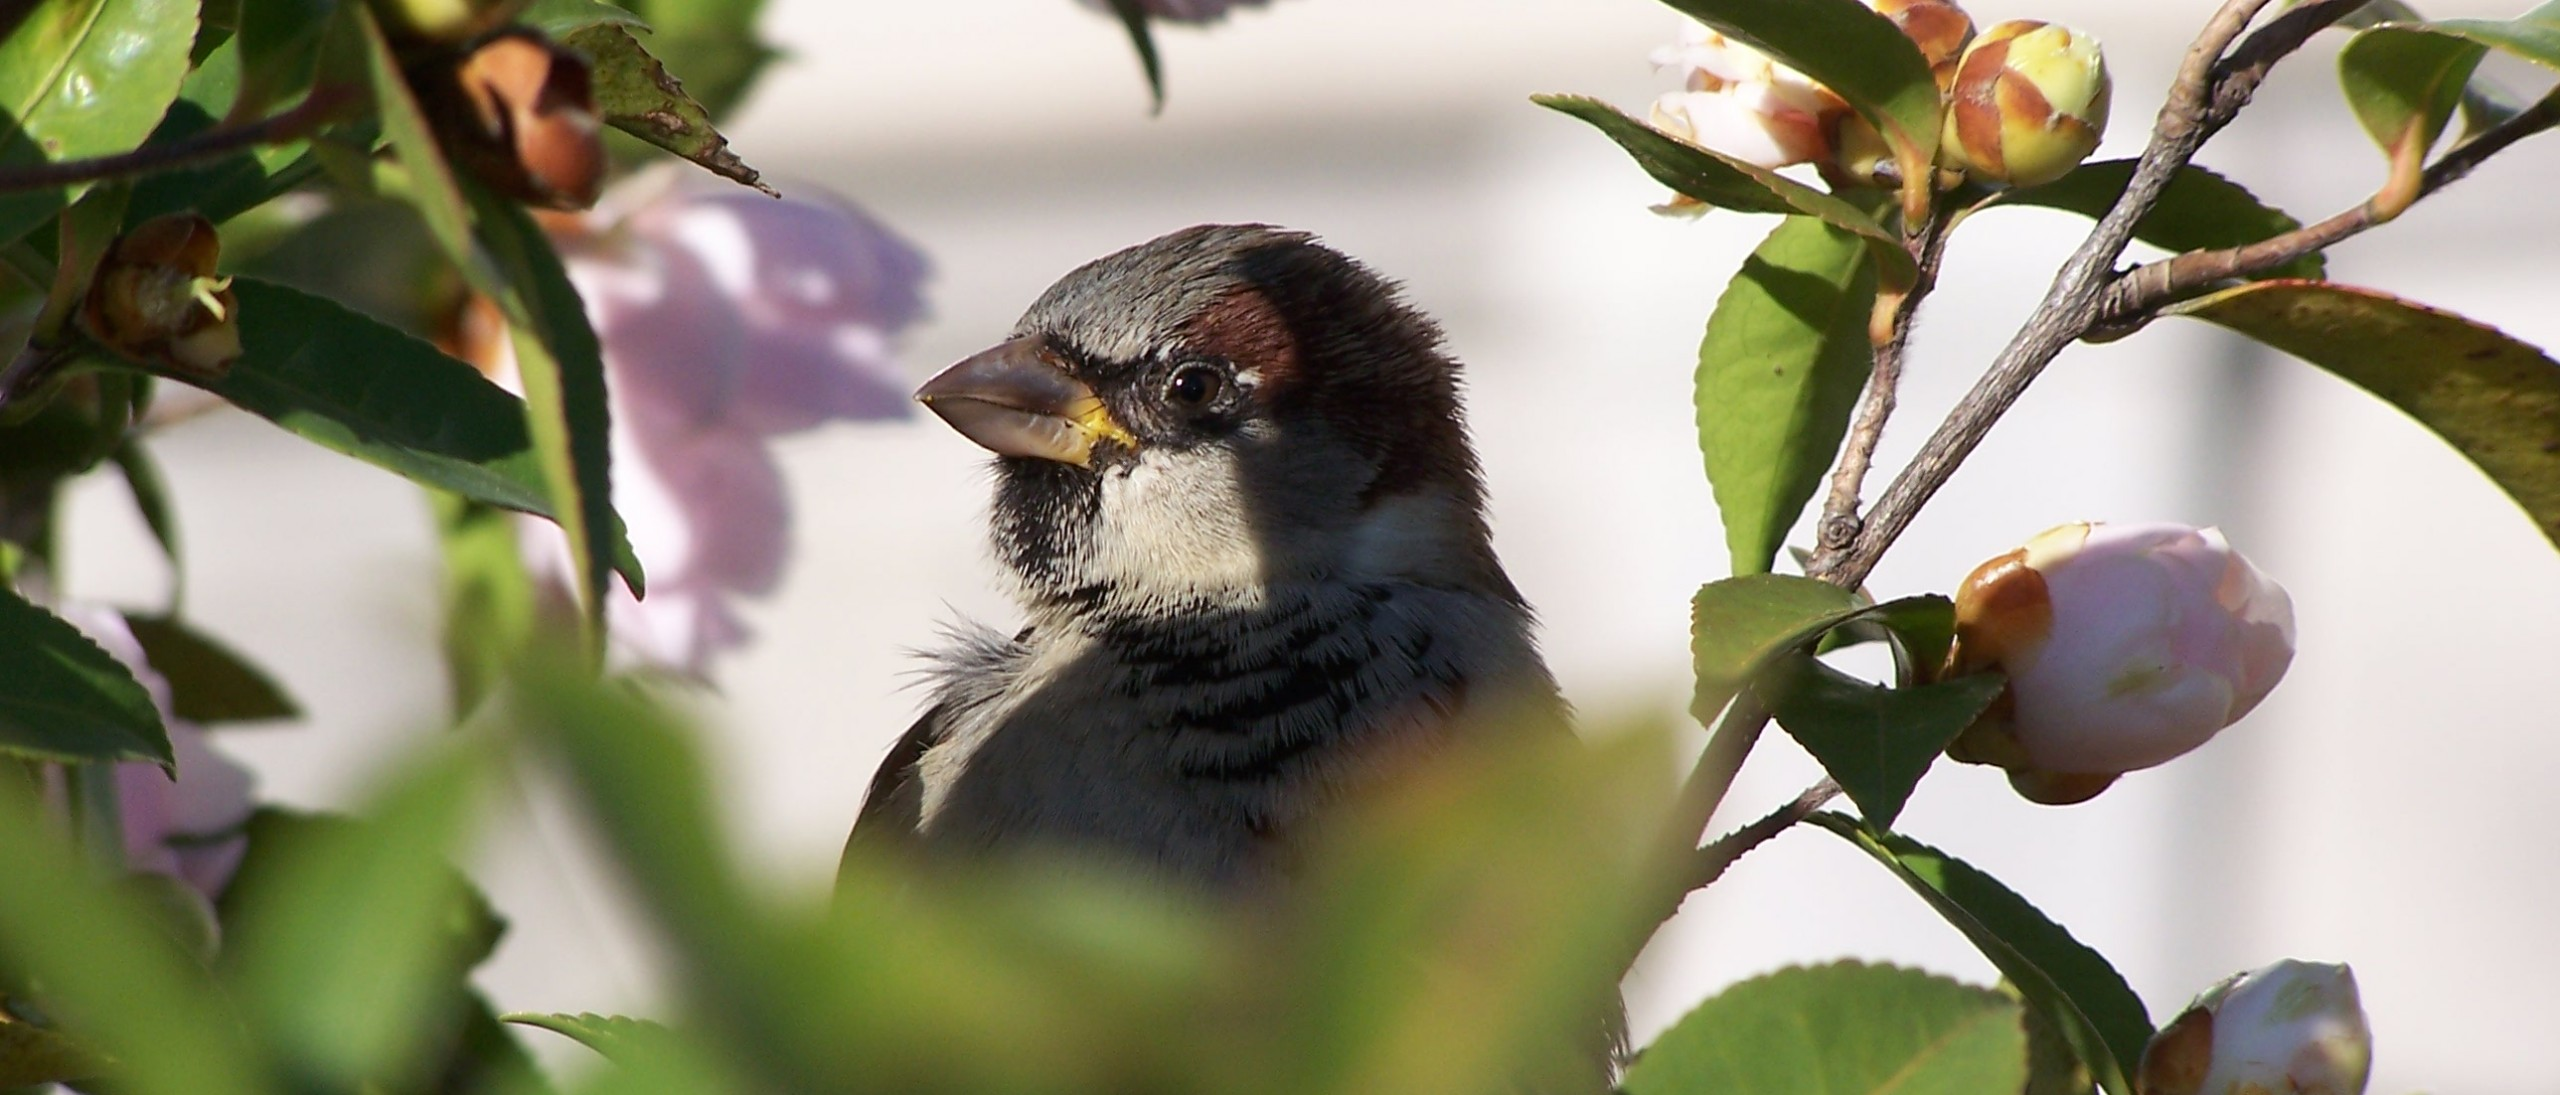 Bird in Shrub